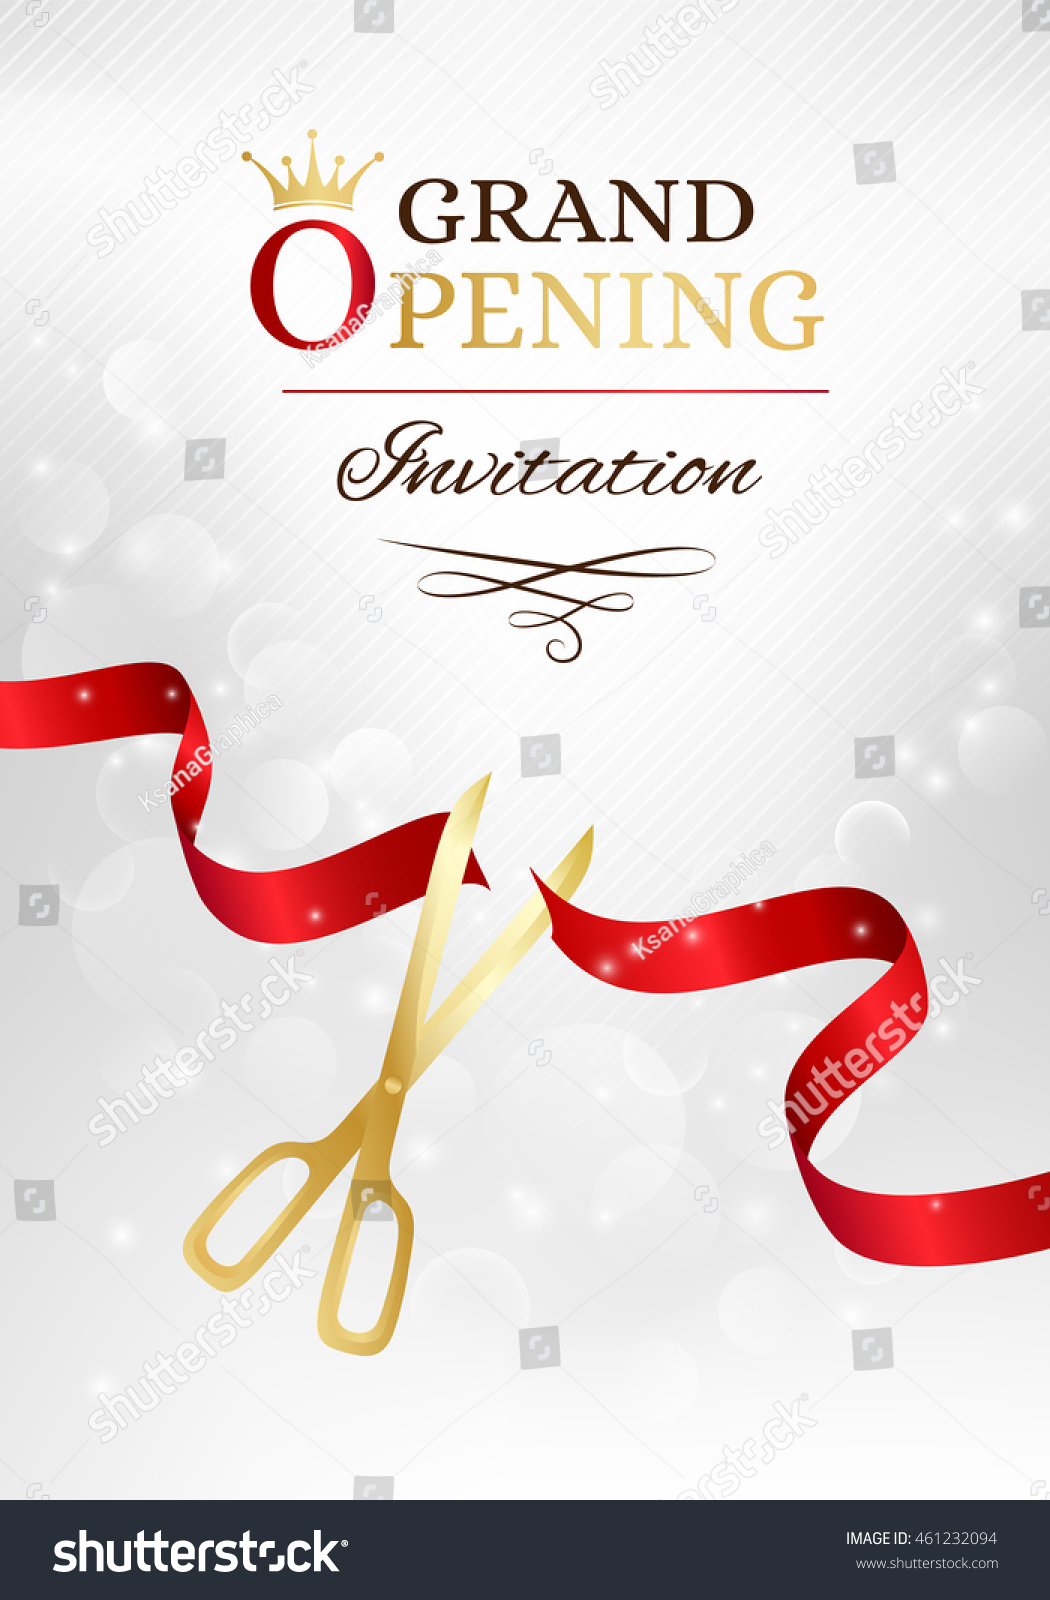 grand opening invitation card with cut red ribbon and gold scissors vector background with light